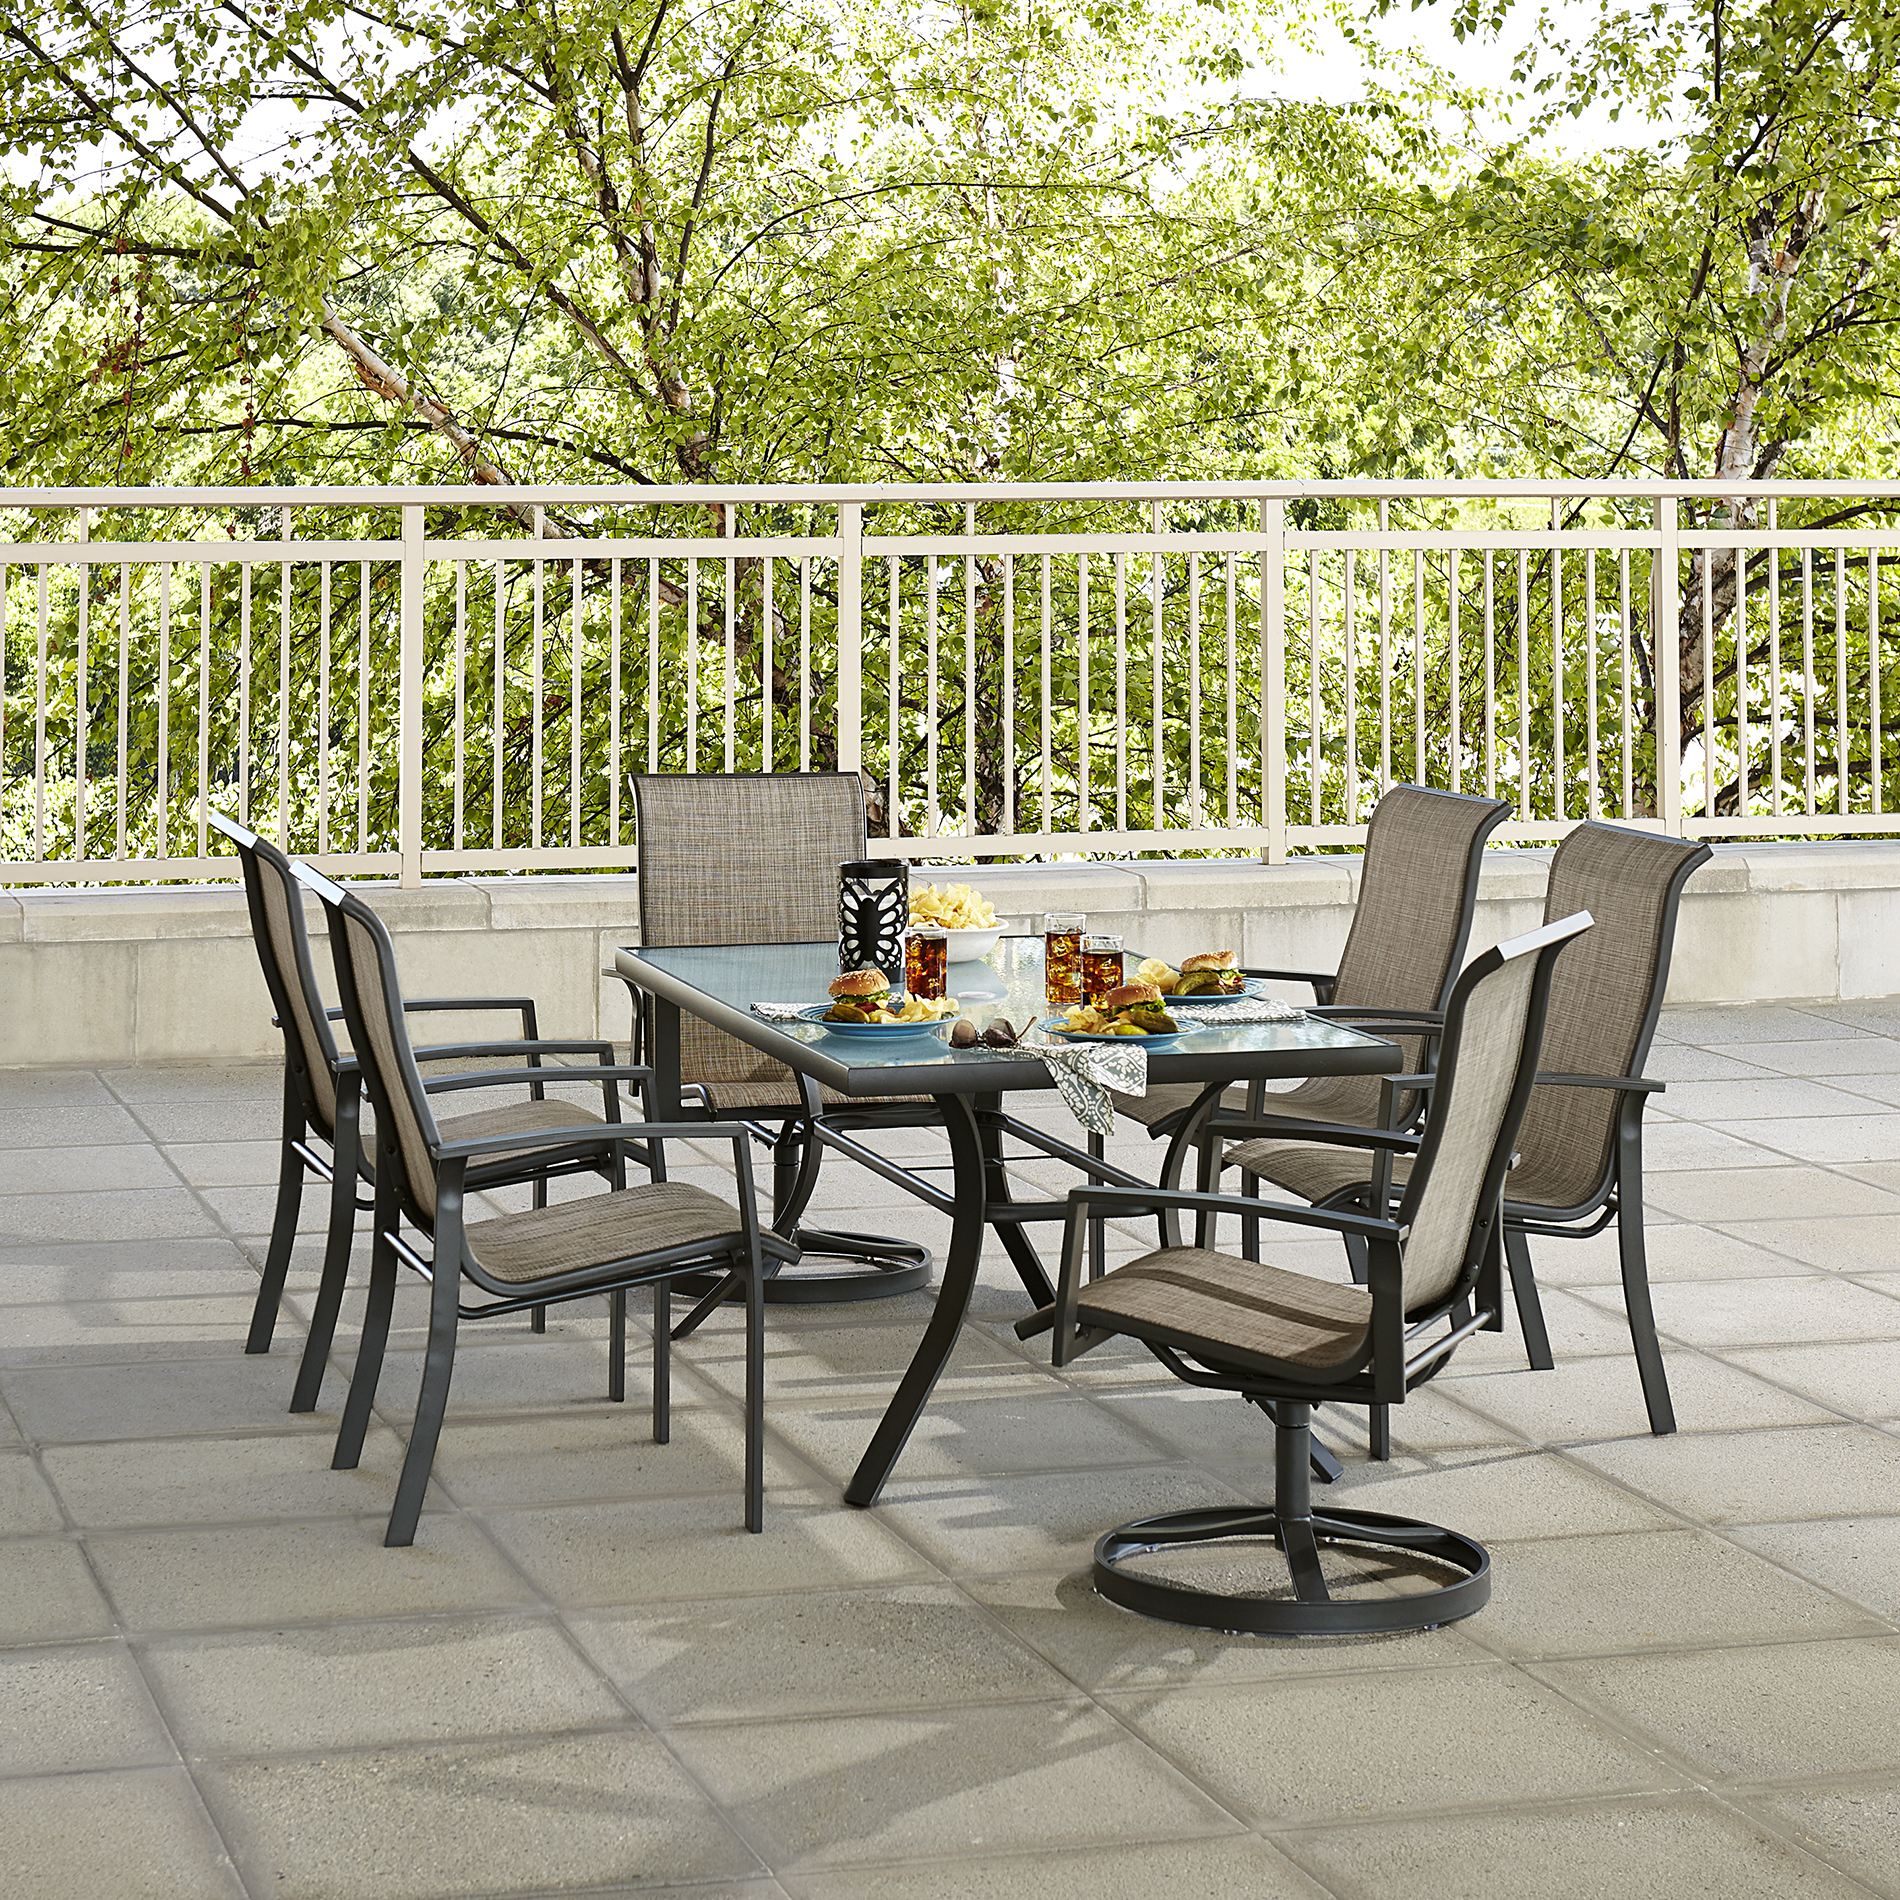 outdoor chairs kmart navy blue dining hoffman 6 patio